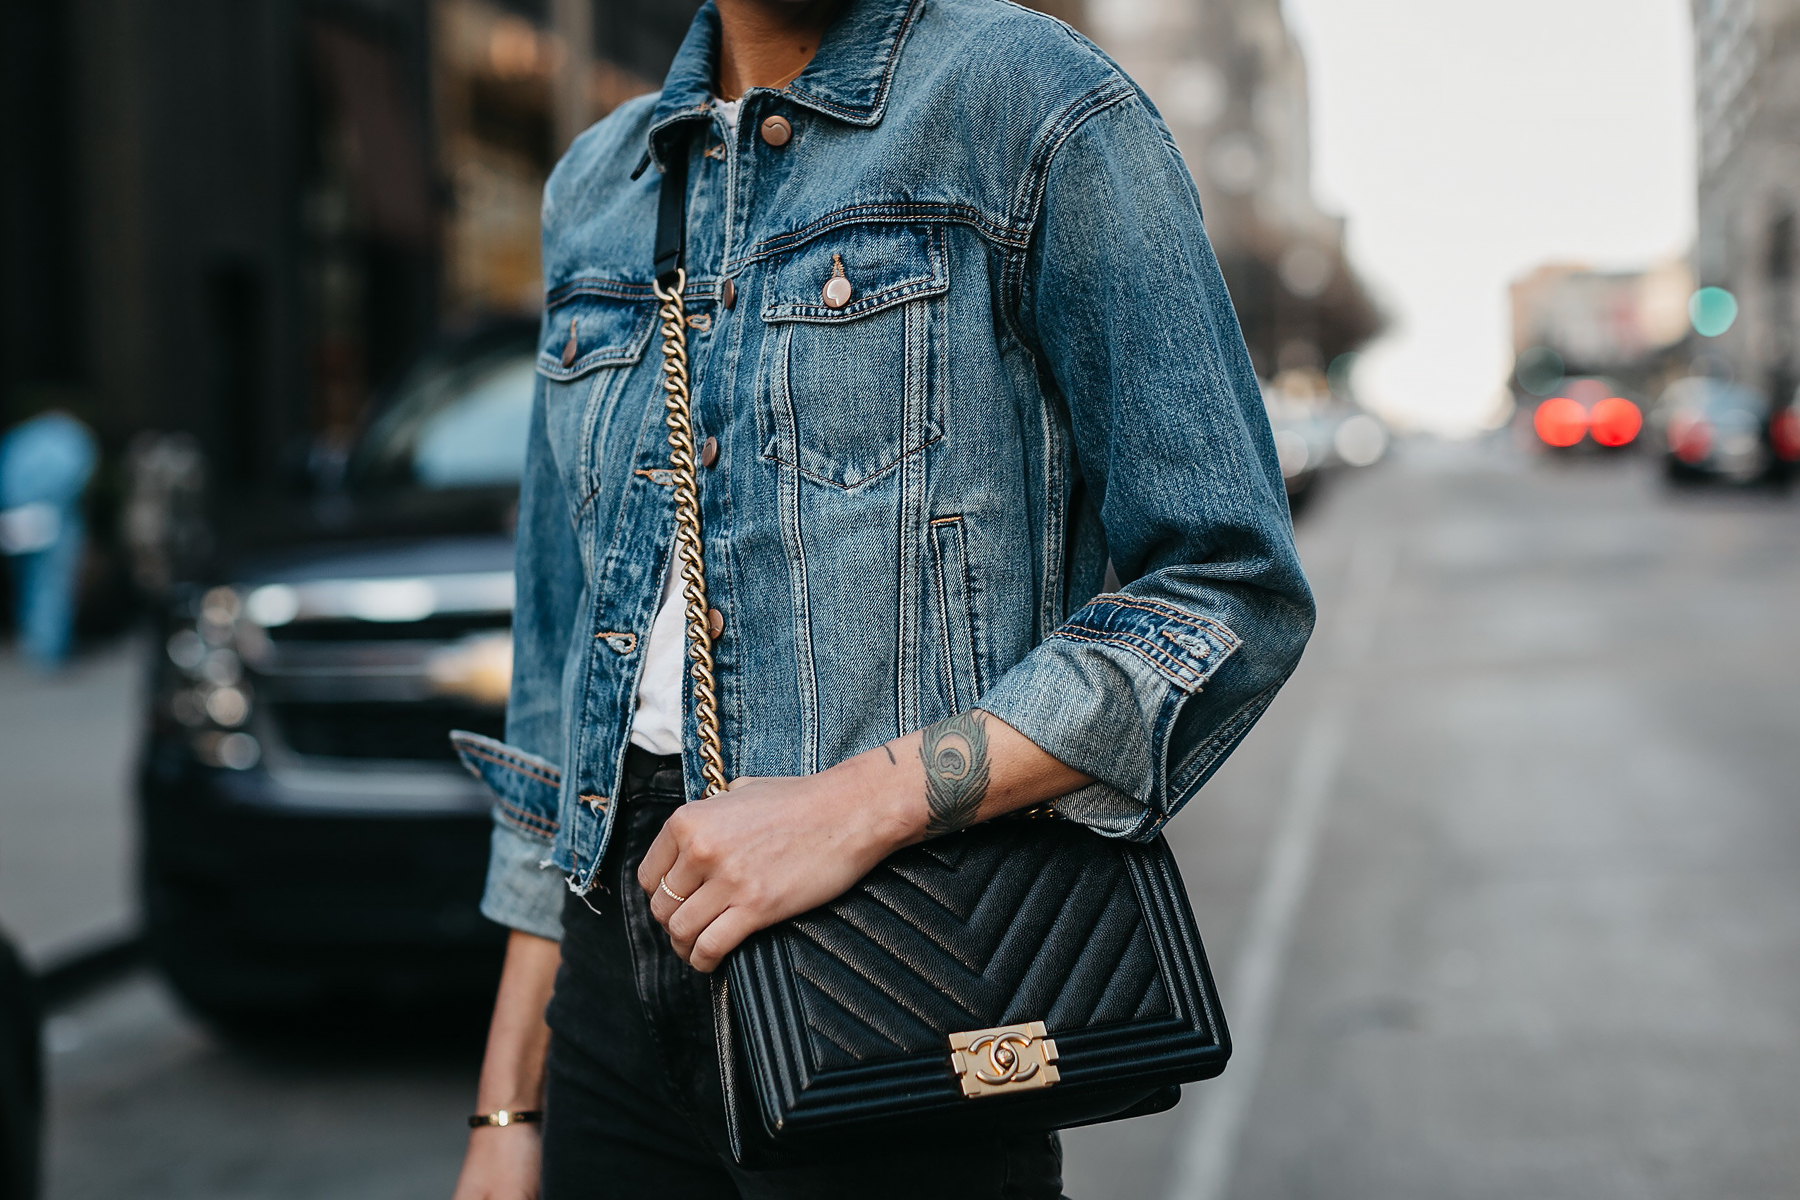 Woman Wearing Joes Jeans Denim Jacket Chanel Black Boy Bag Fashion Jackson Dallas Blogger Fashion Blogger Street Style